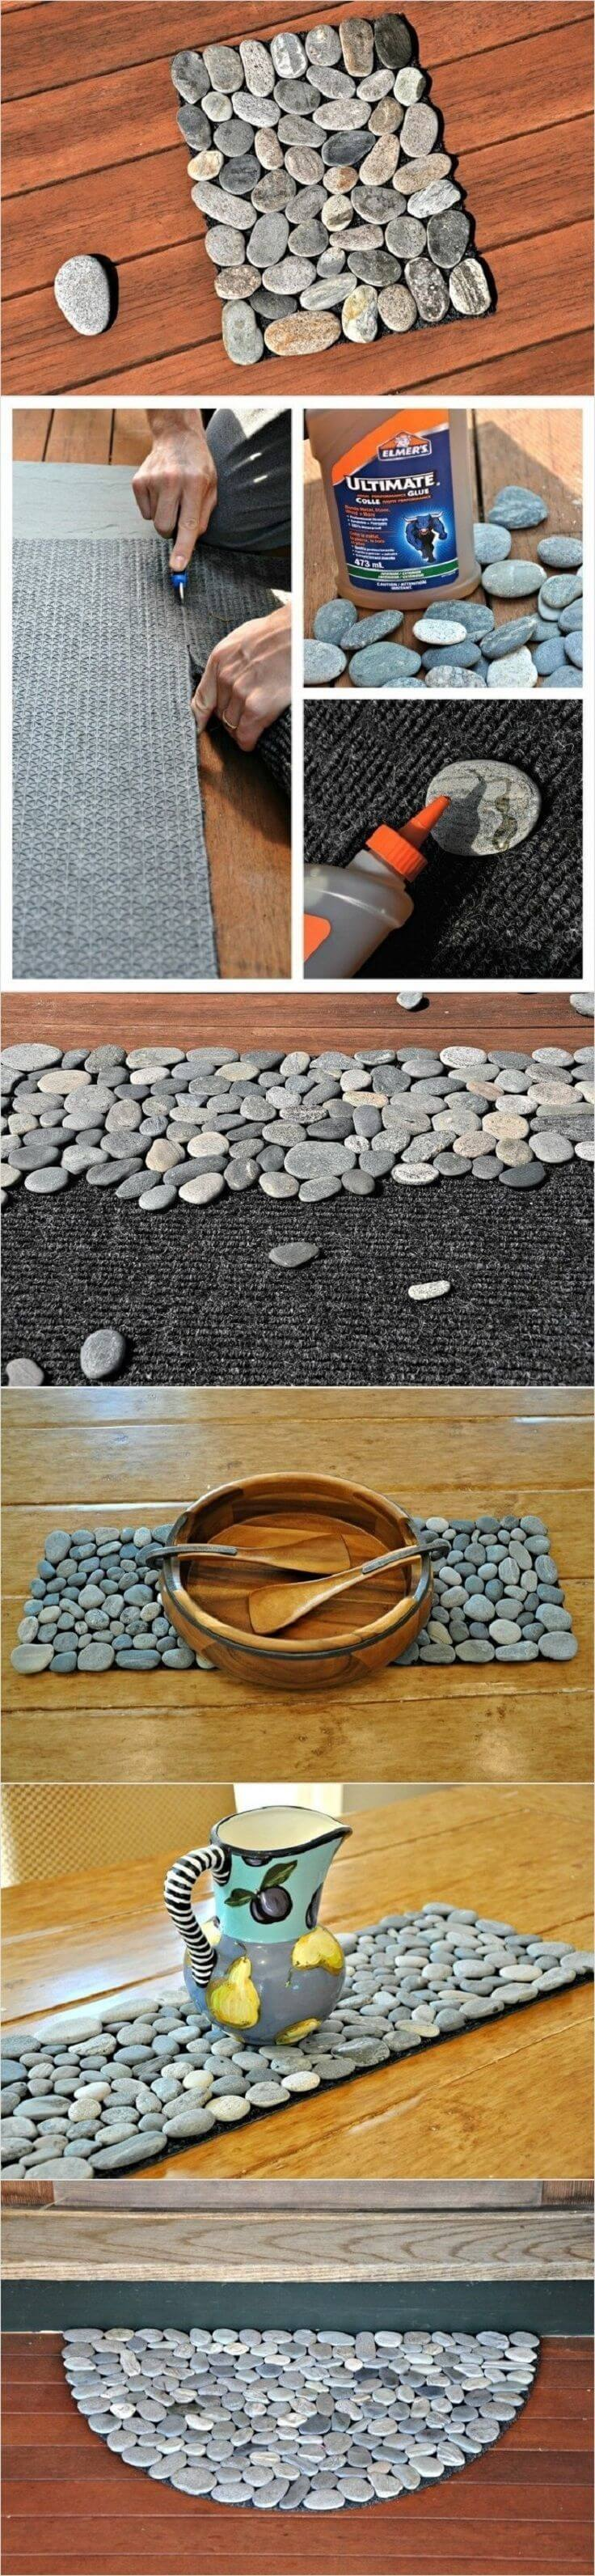 27 Best DIY Pebble and River Rock Decor Ideas and Designs ... on Rock Decorating Ideas  id=64406